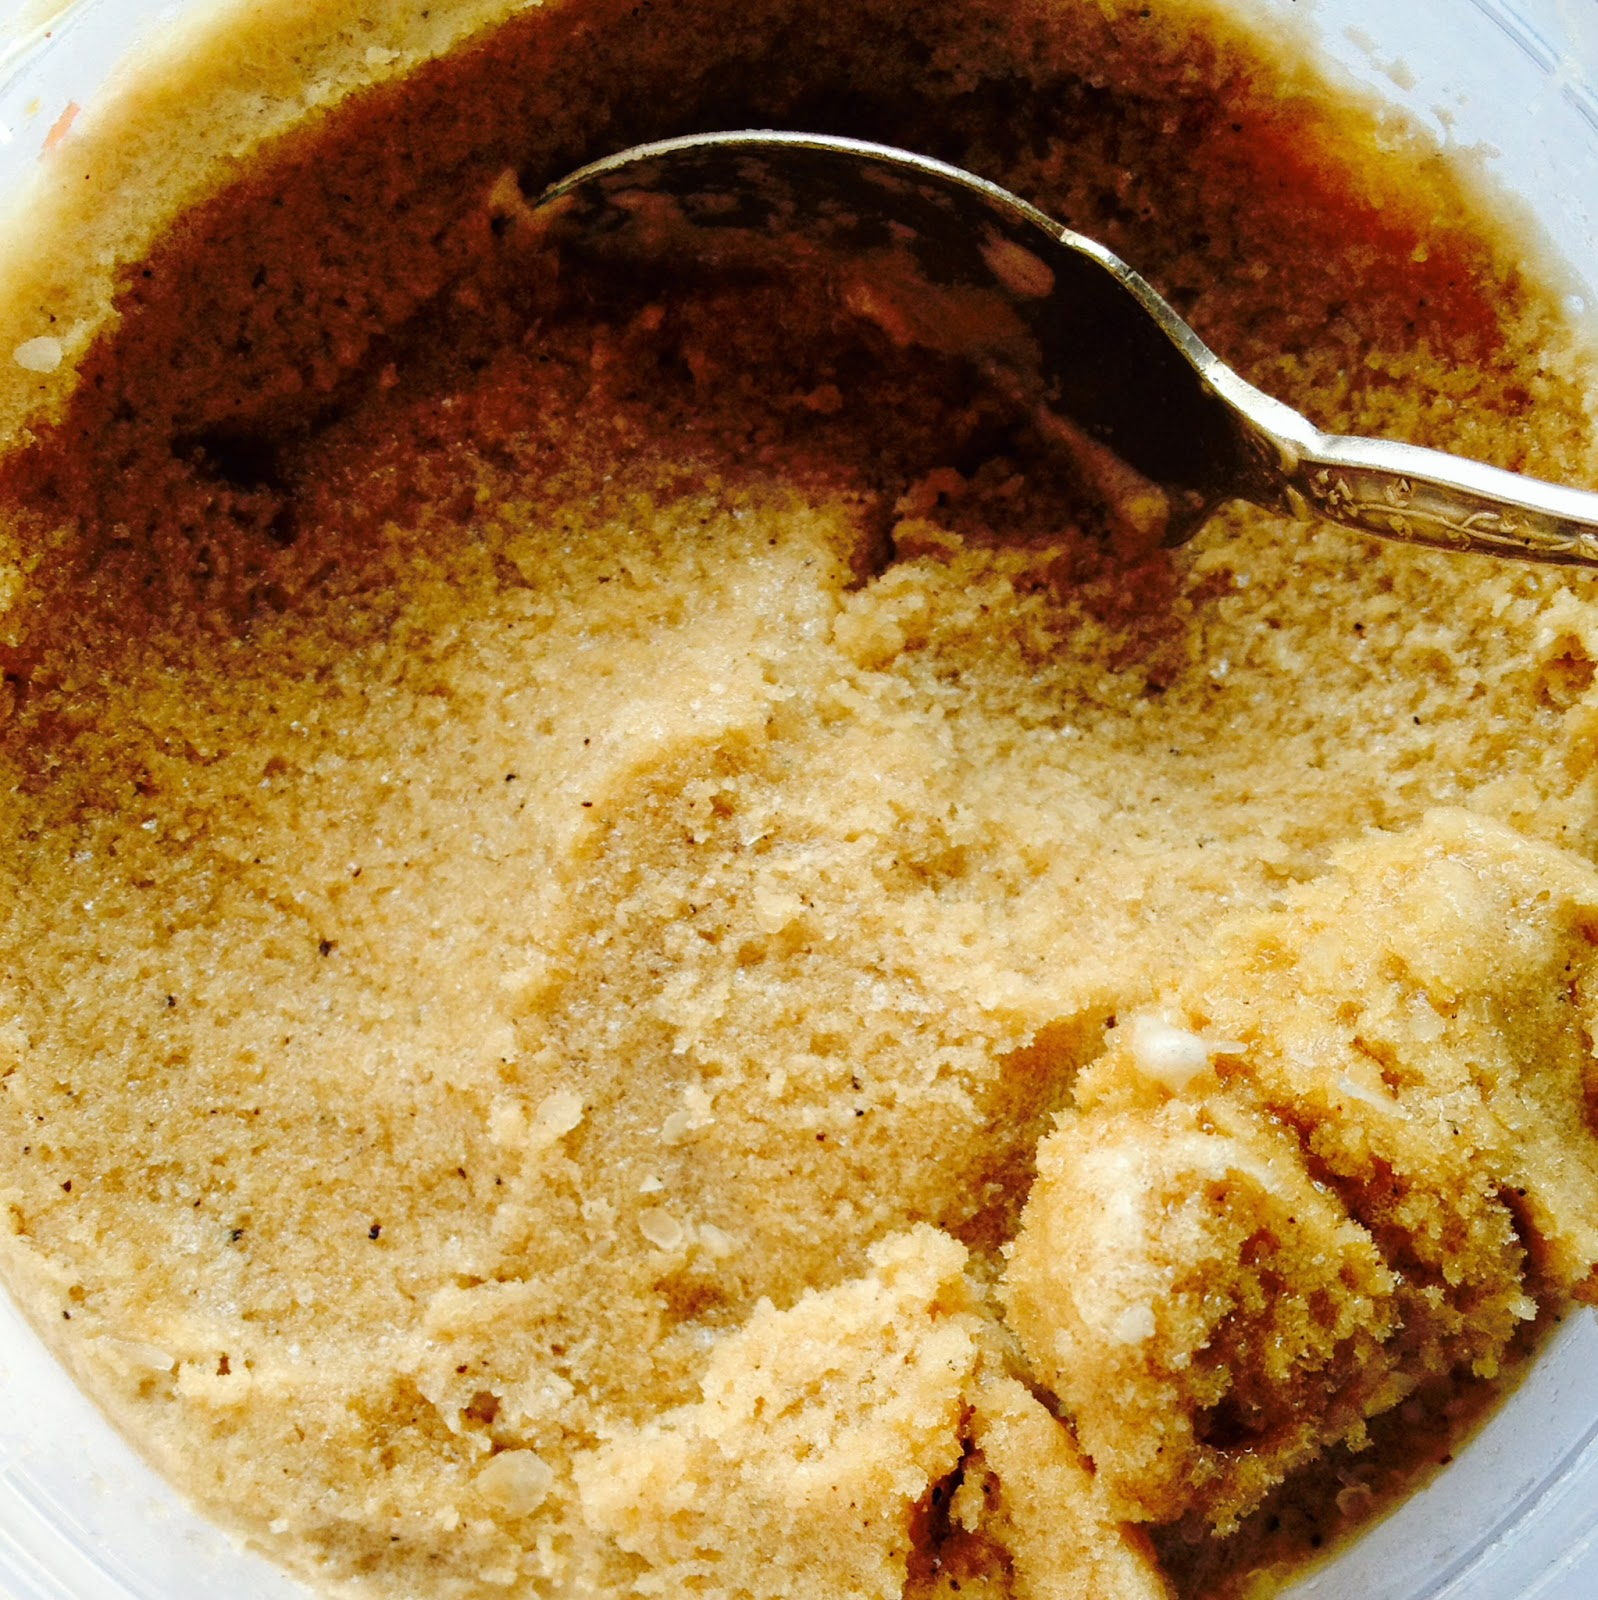 How To Make Coffee Sorbet Recipe/Image: Lucy Corry/The Kitchenmaid